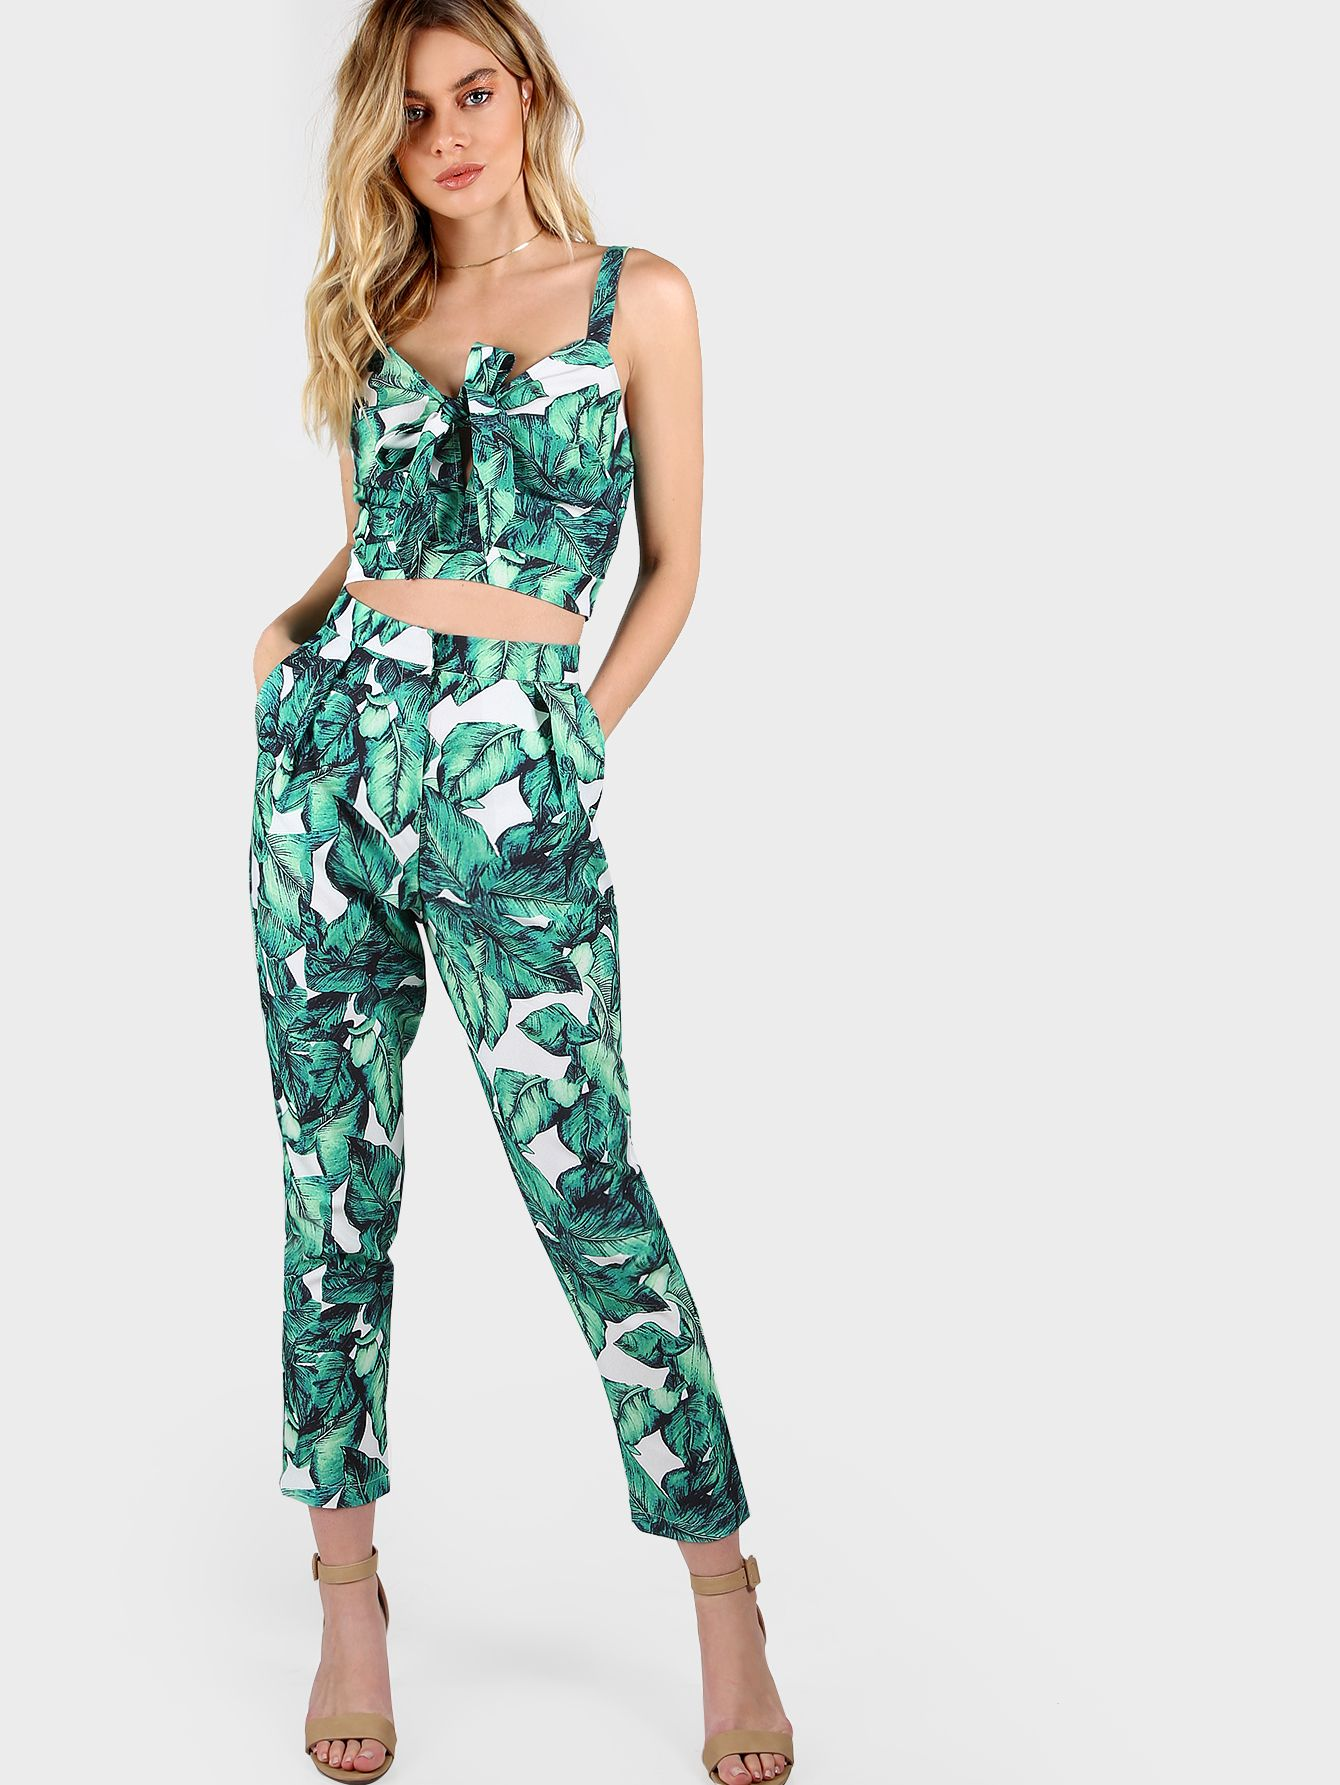 efa5668a32 Front Tie Leaf Print Crop and Matching Pants Set -SheIn(Sheinside ...